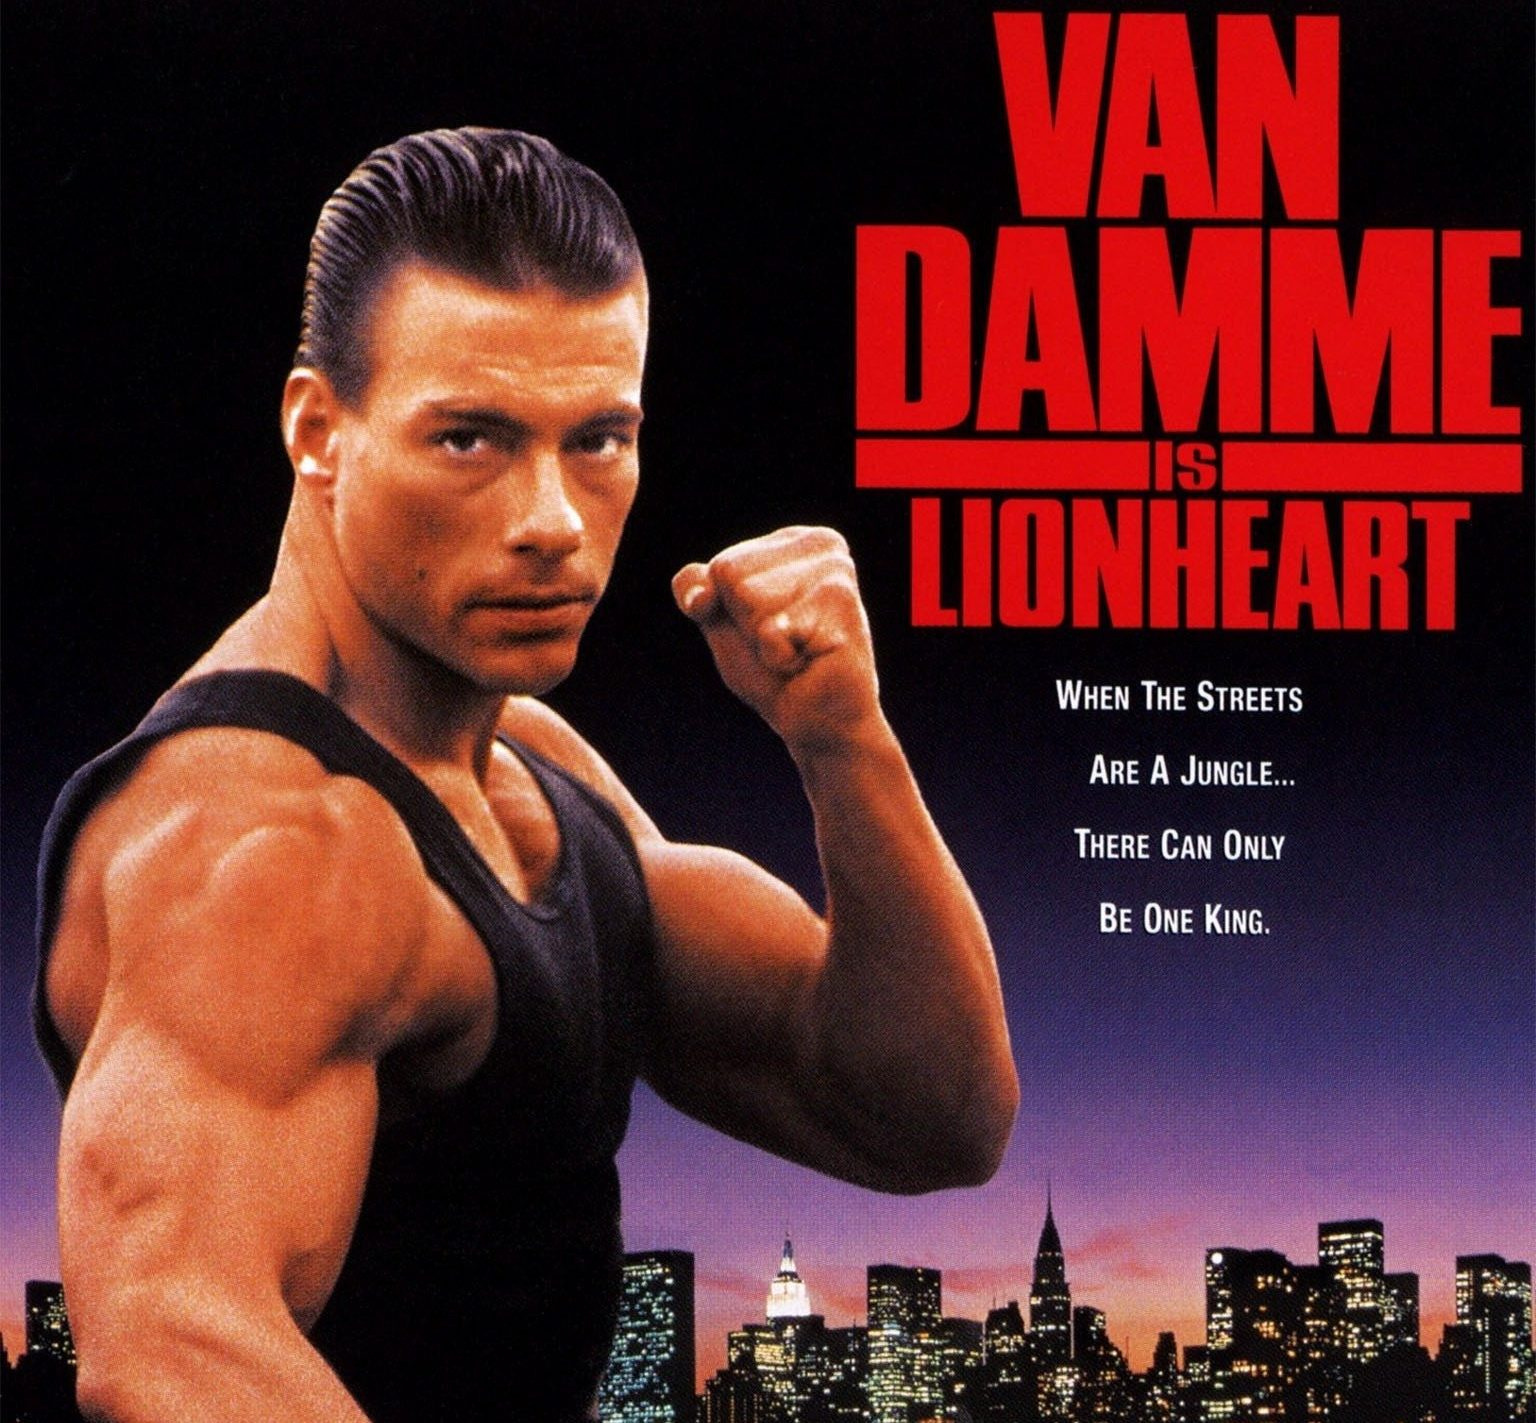 p13252 p v10 ab e1619096538982 25 Crotch-Punching Facts About Jean-Claude Van Damme's 1988 Film Bloodsport